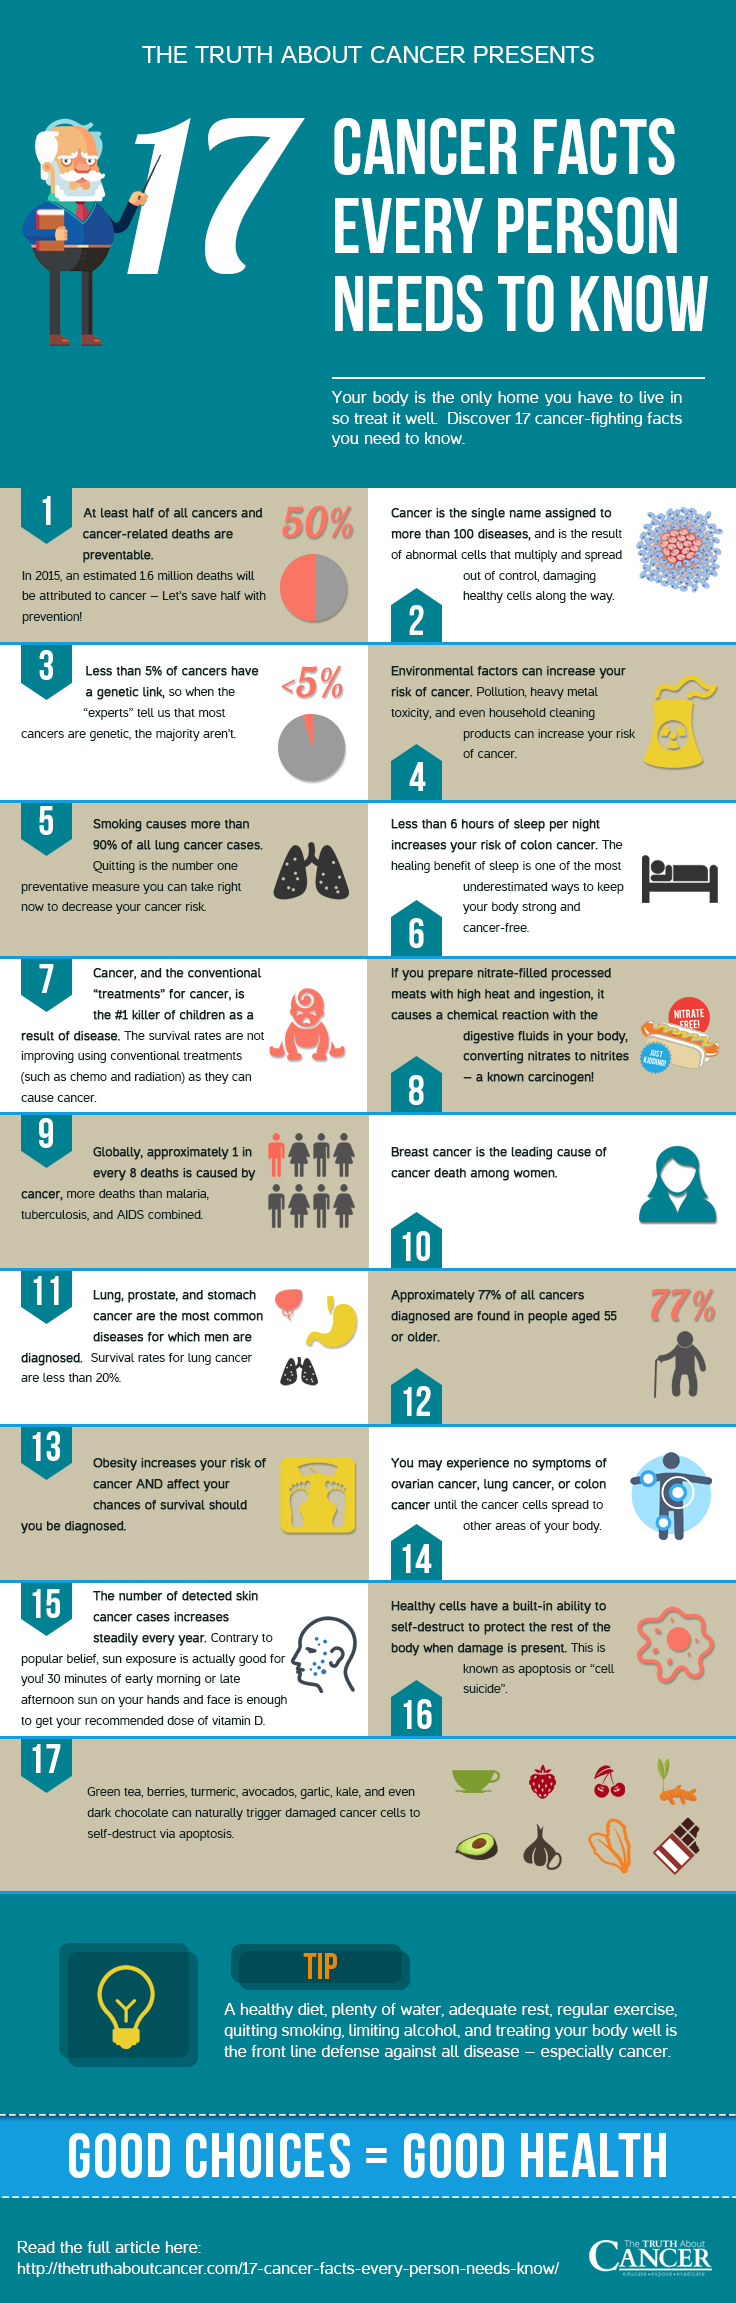 Right Click VIEW AS to see larger image   Thanks to The Truth About Cancer for this info and visit here to learn more:    The Truth About Cancer